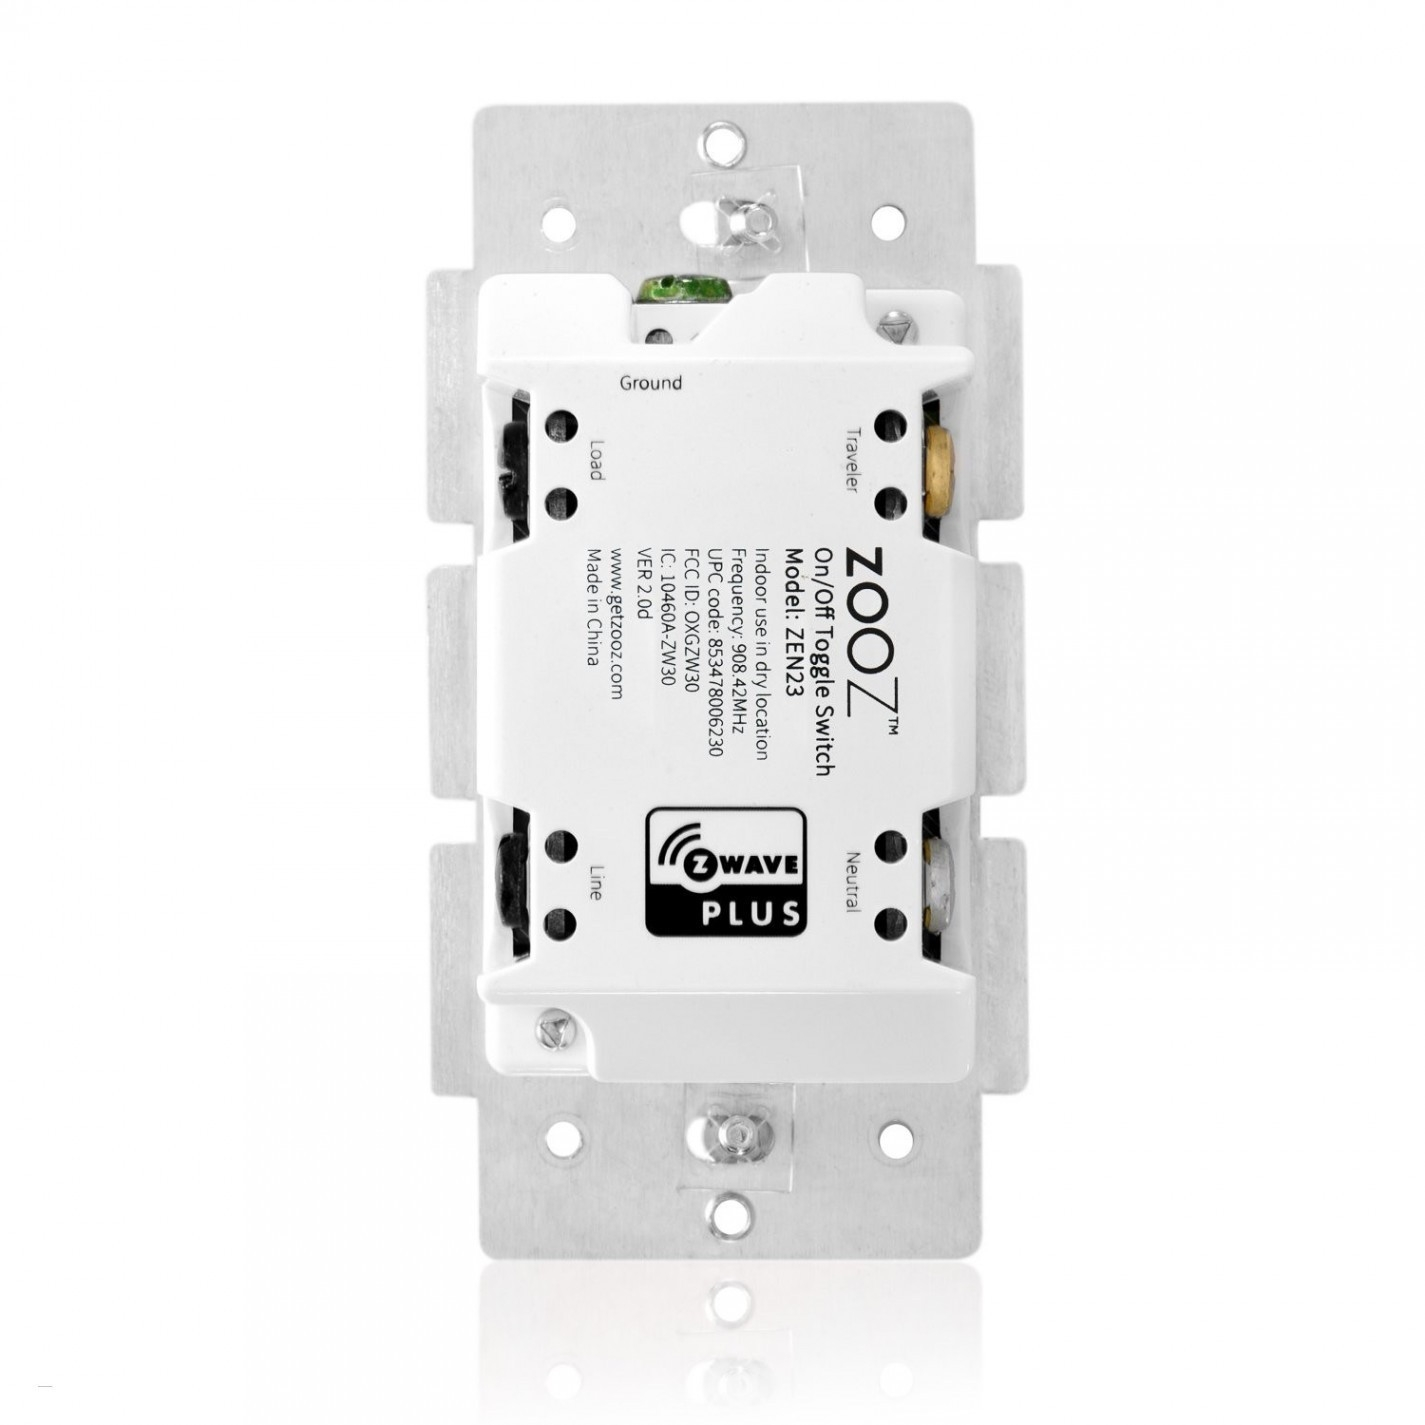 hight resolution of 3 way switch wiring diagram wiring diagram 3 way light switch best wiring diagram for